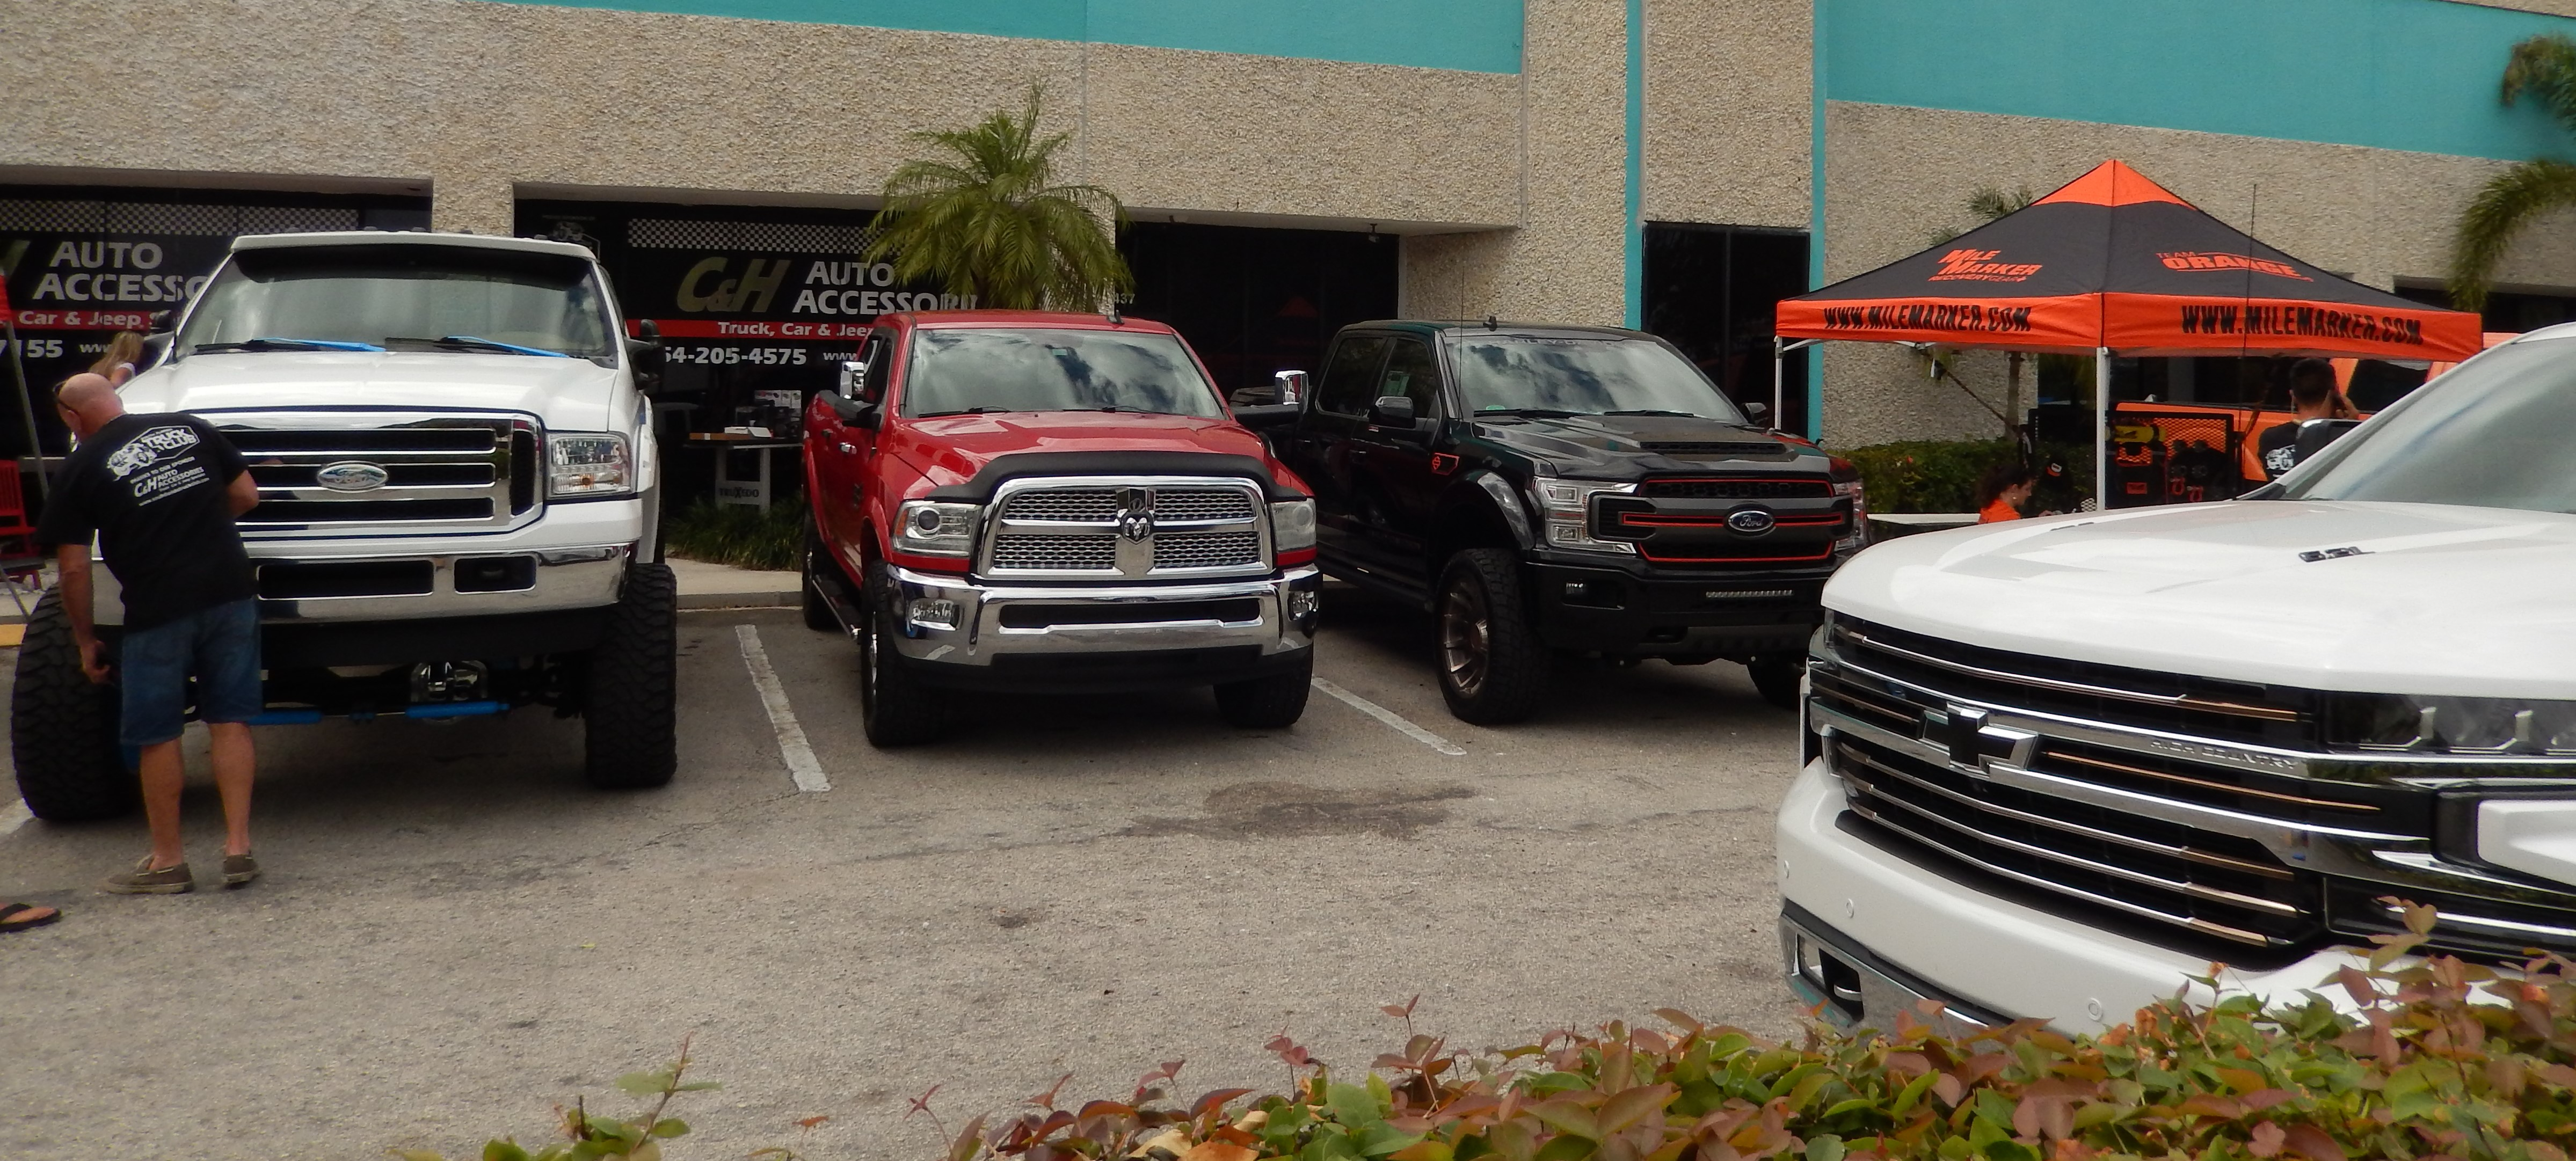 Truck show at the store